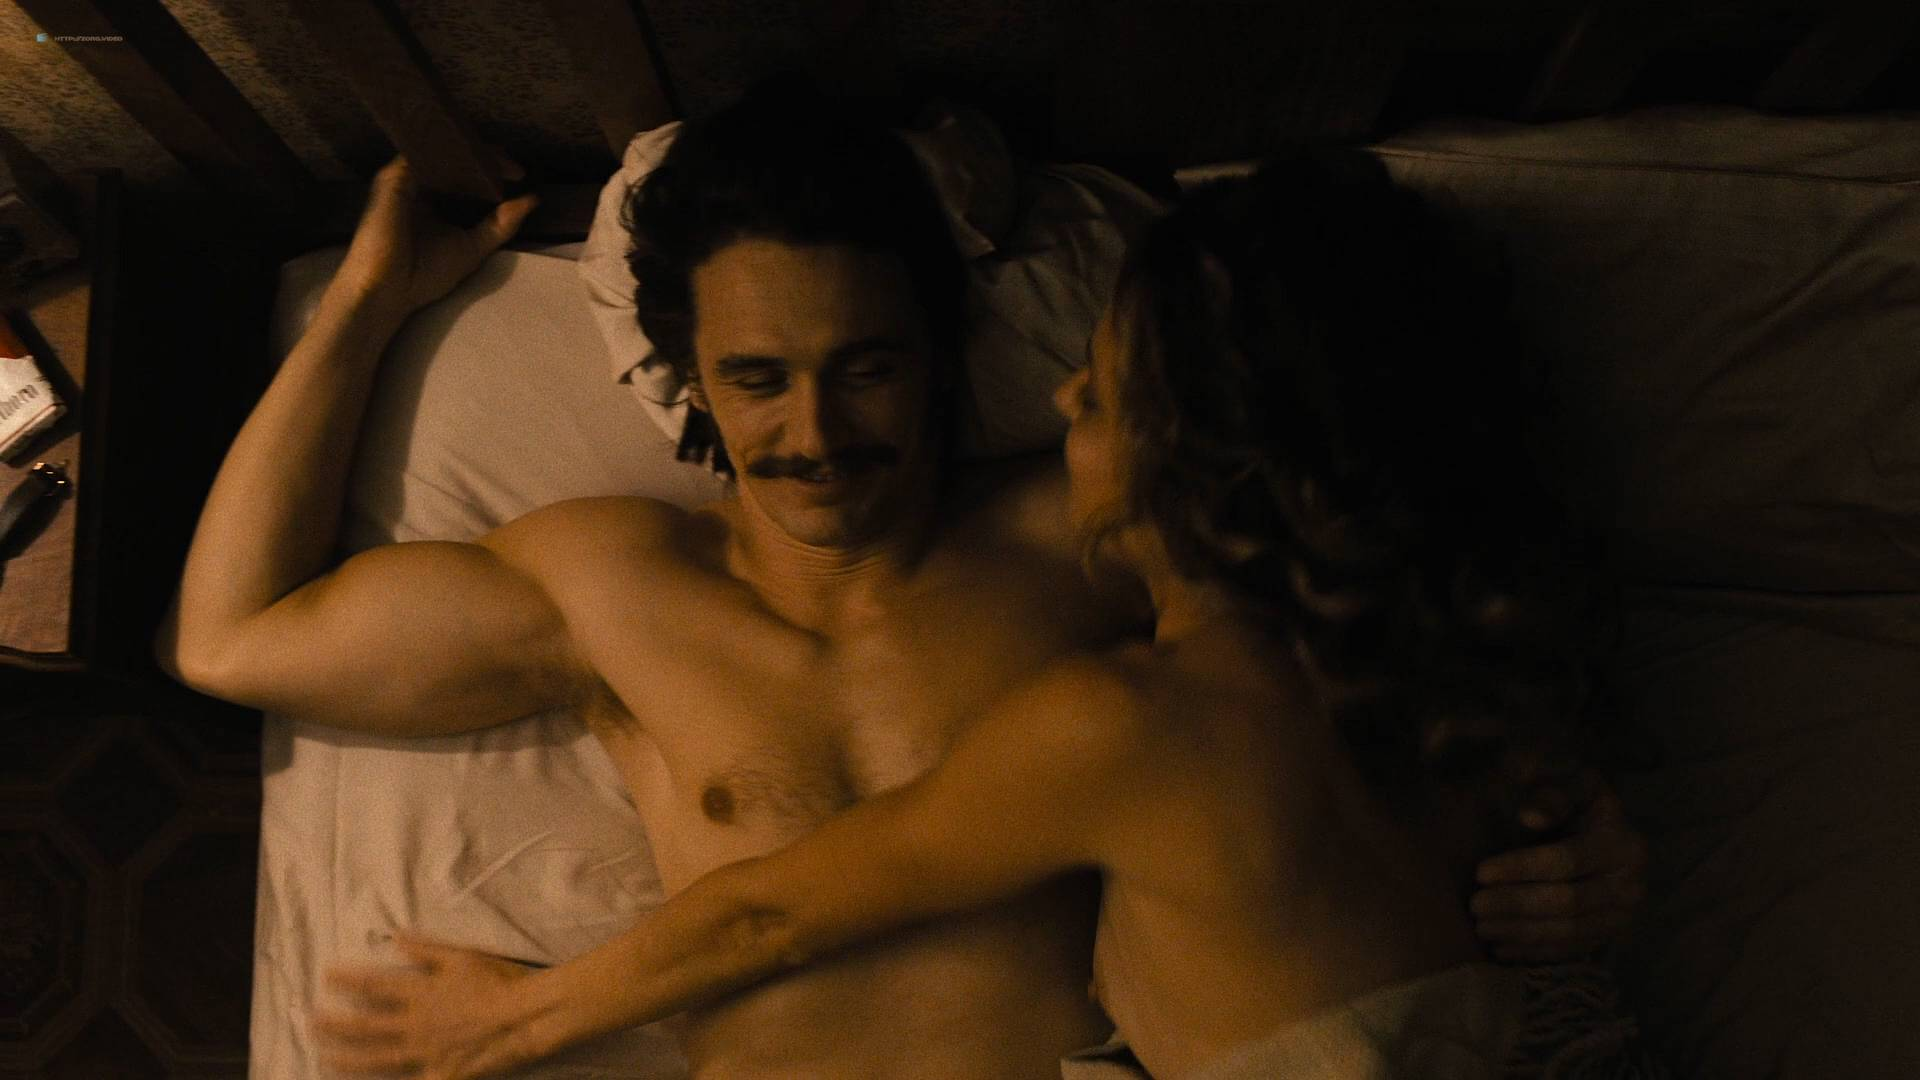 Maggie Gyllenhaal nude topless sex Margarita Levieva and Emily Meade nude - The Deuce (2017) s1e6 HD 1080p (7)